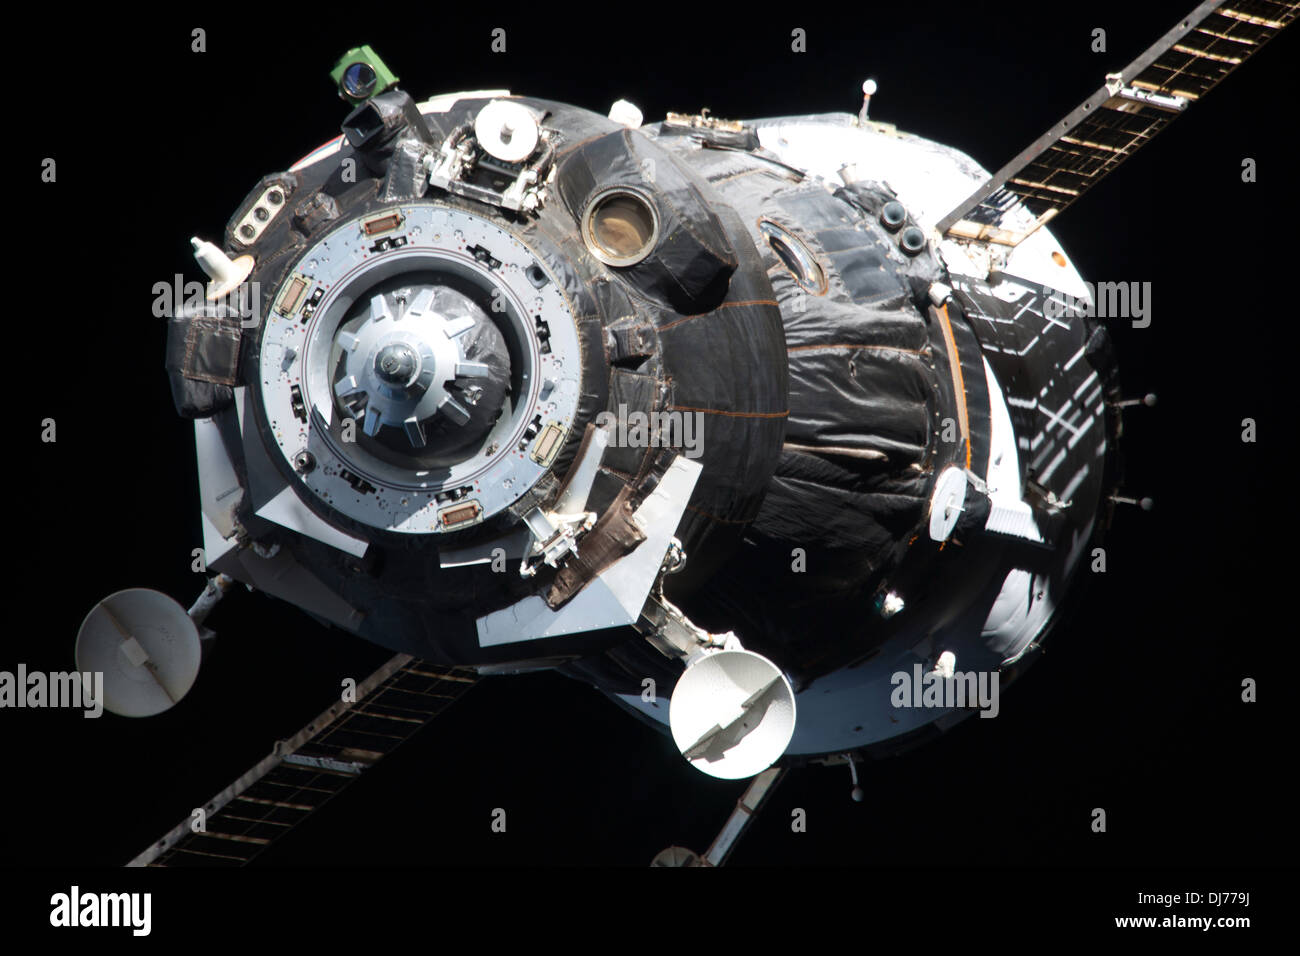 Soyuz TMA-09M spacecraft - Stock Image